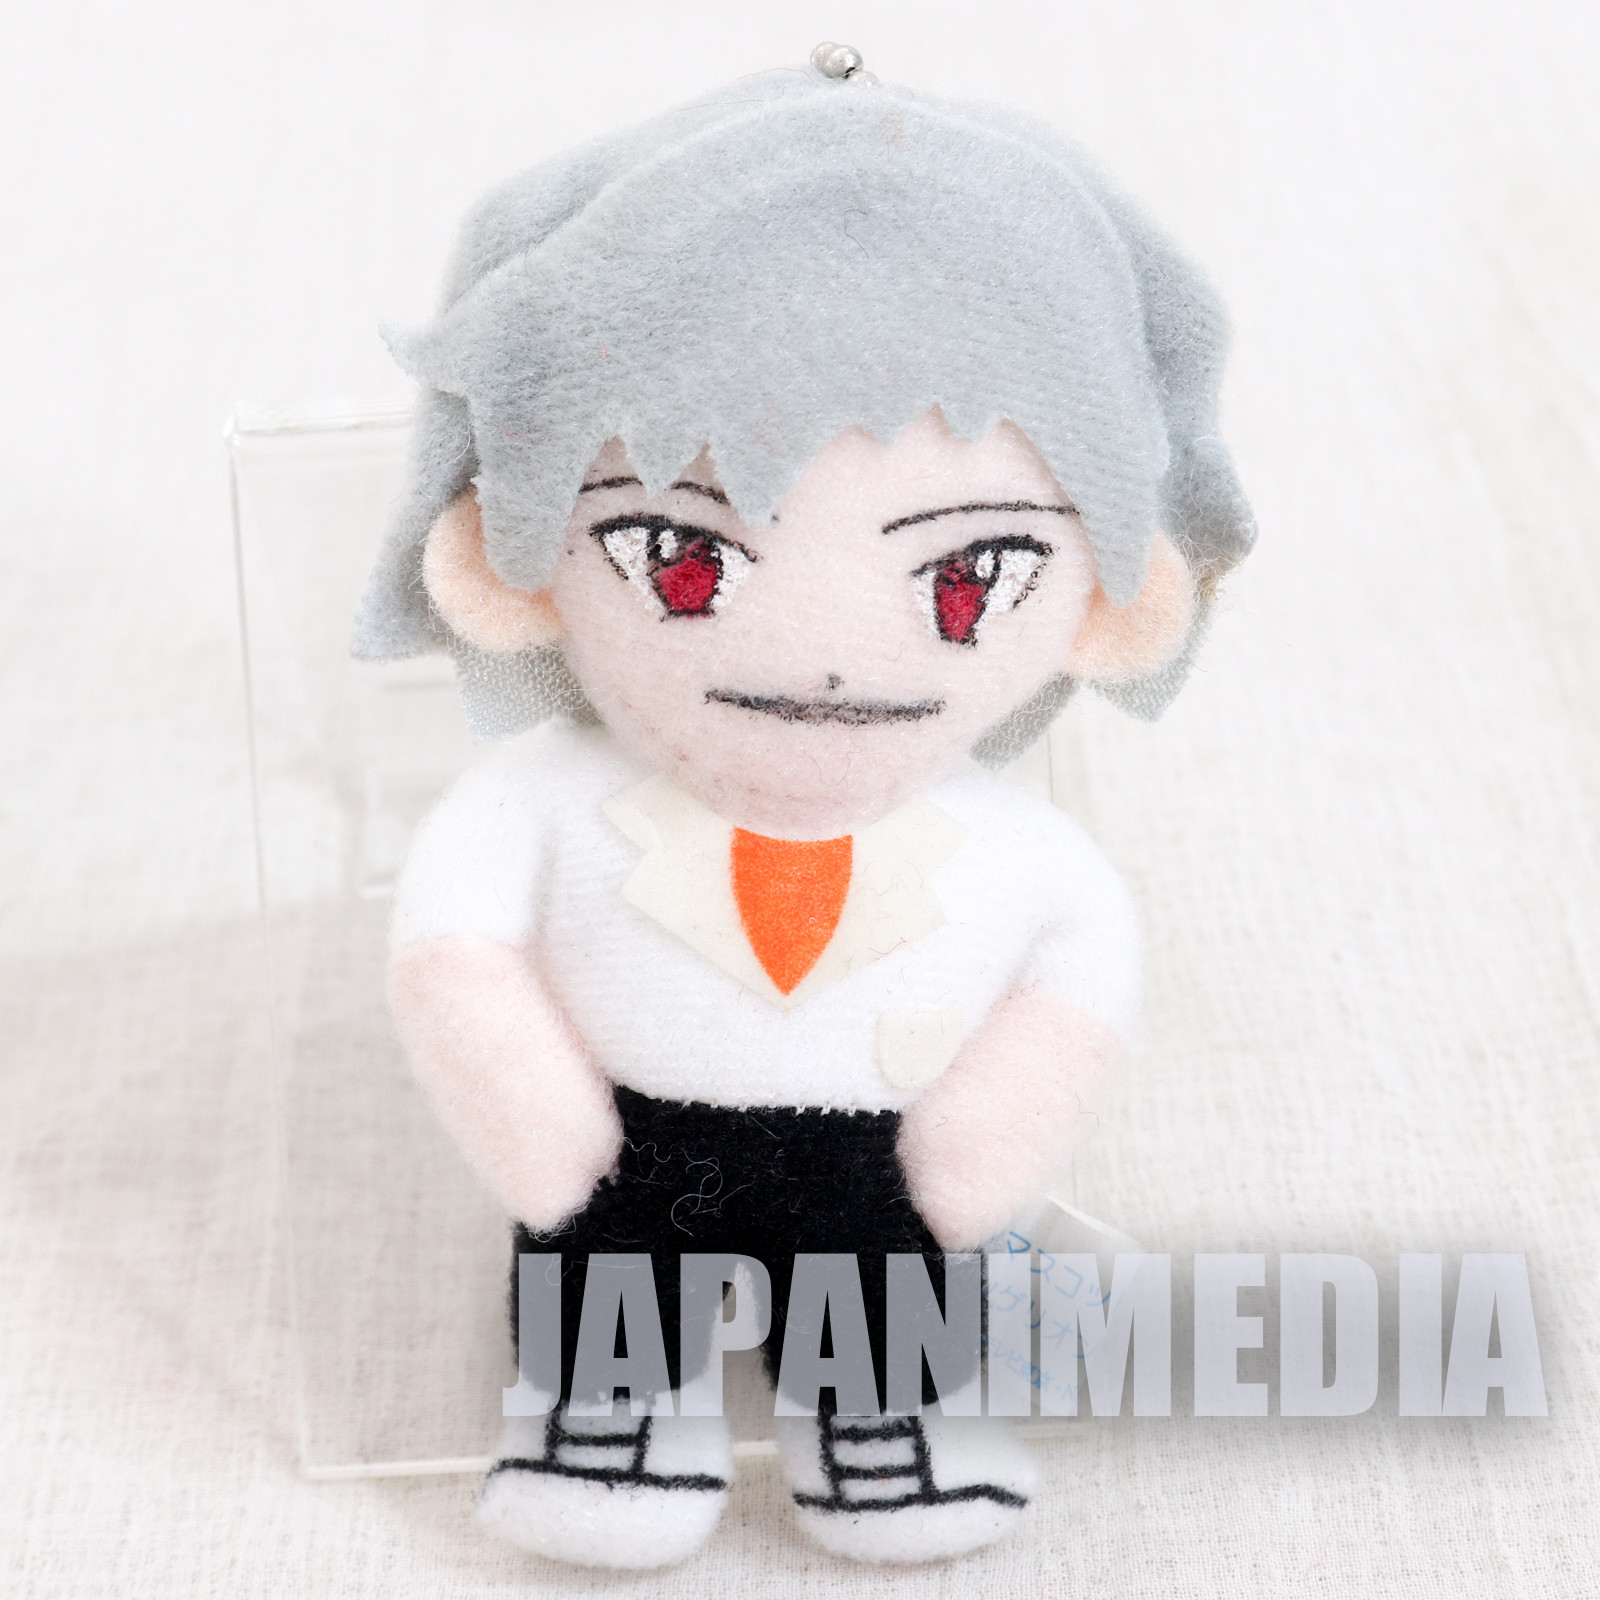 Evangelion Kaworu Nagisa Mini Plush Doll Figure Ball chain SEGA JAPAN